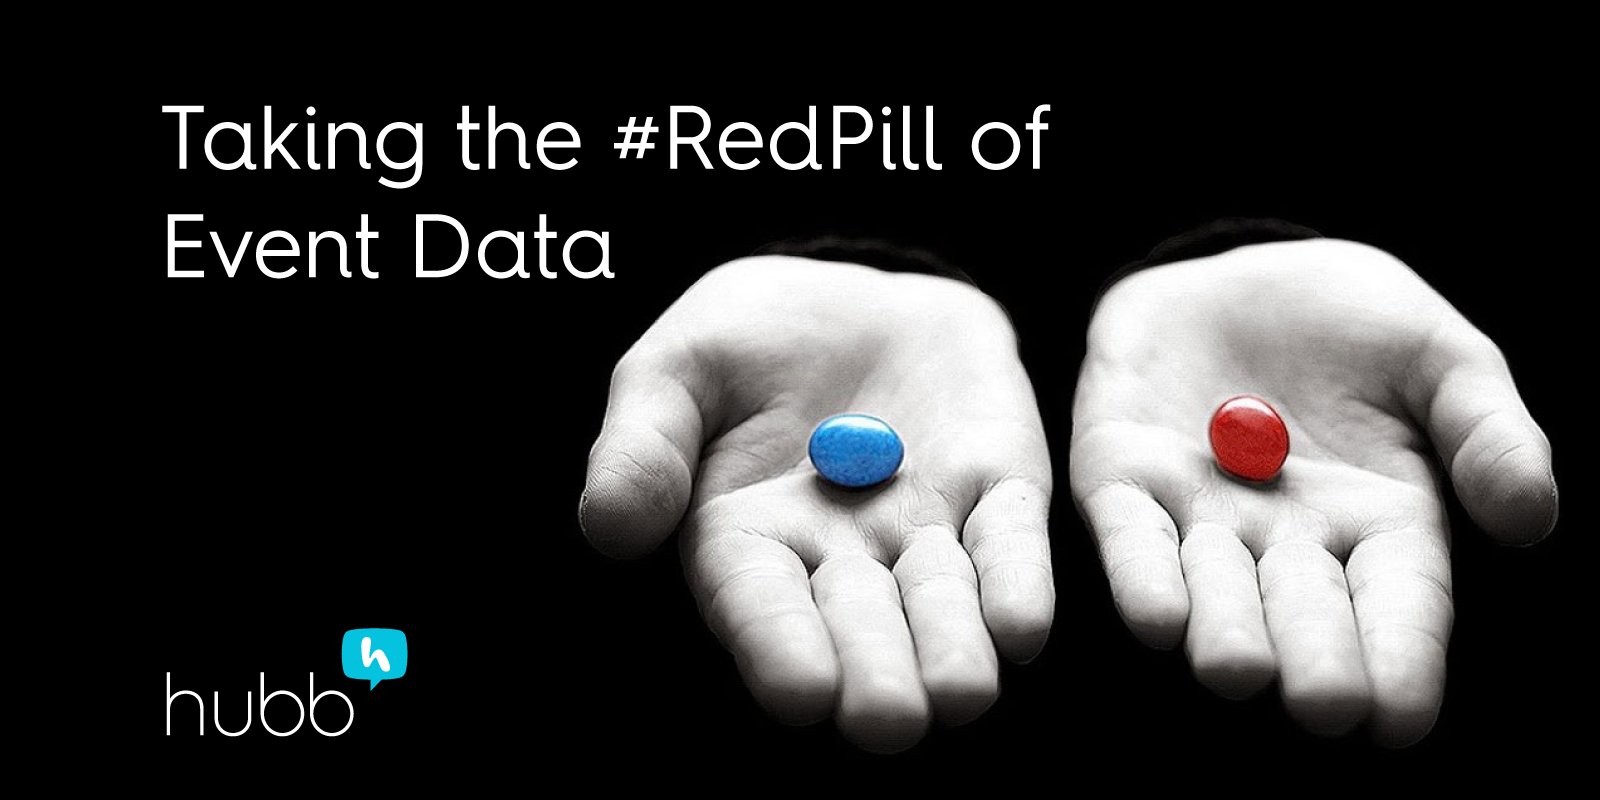 Taking-the-Red-Pill-of-Event-Data-Social